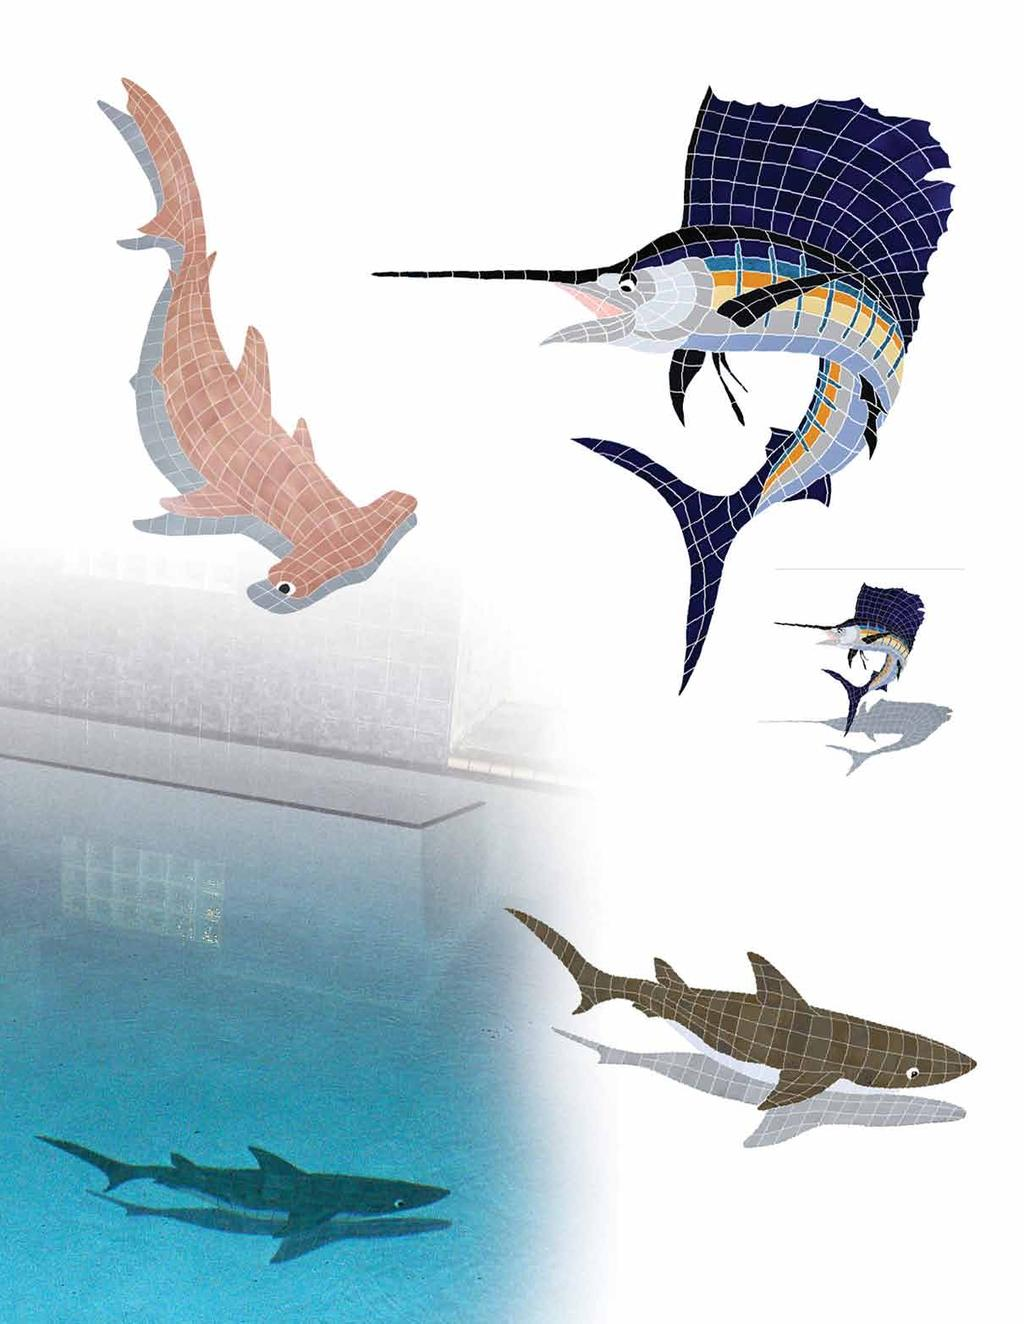 "Trophy Sailfish 53"" x 50"" STRMCOLL 62"" x 61"" shadow STSMCOLL Hammerhead Shark with"